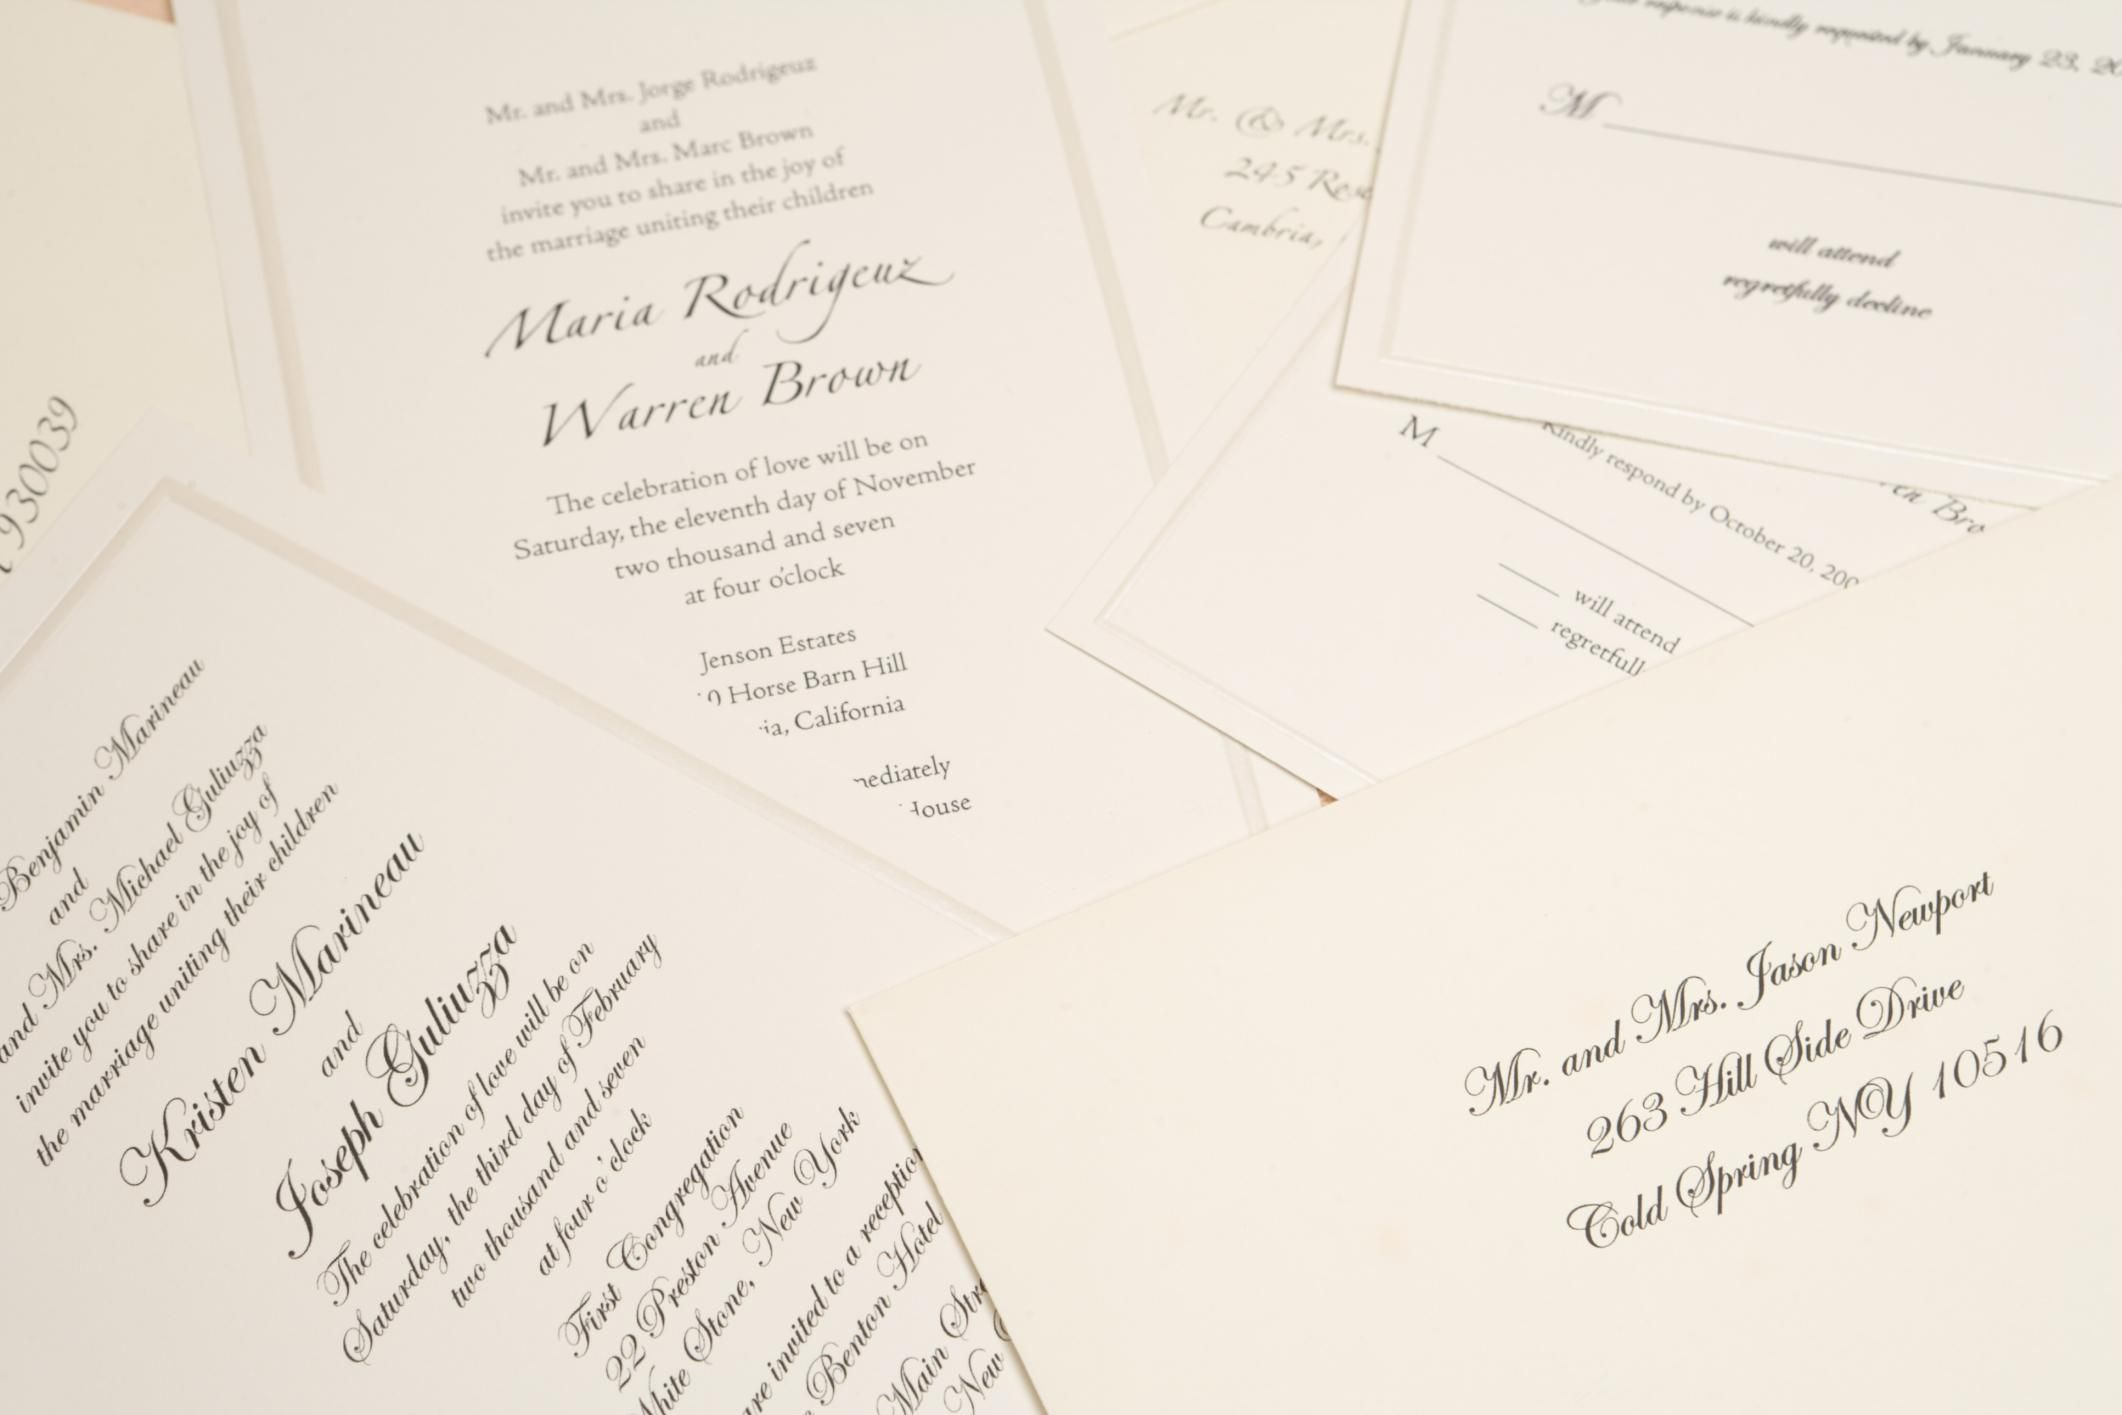 When Should Invitations Be Sent Out For A Wedding: When To Send Out Your Wedding Invitations